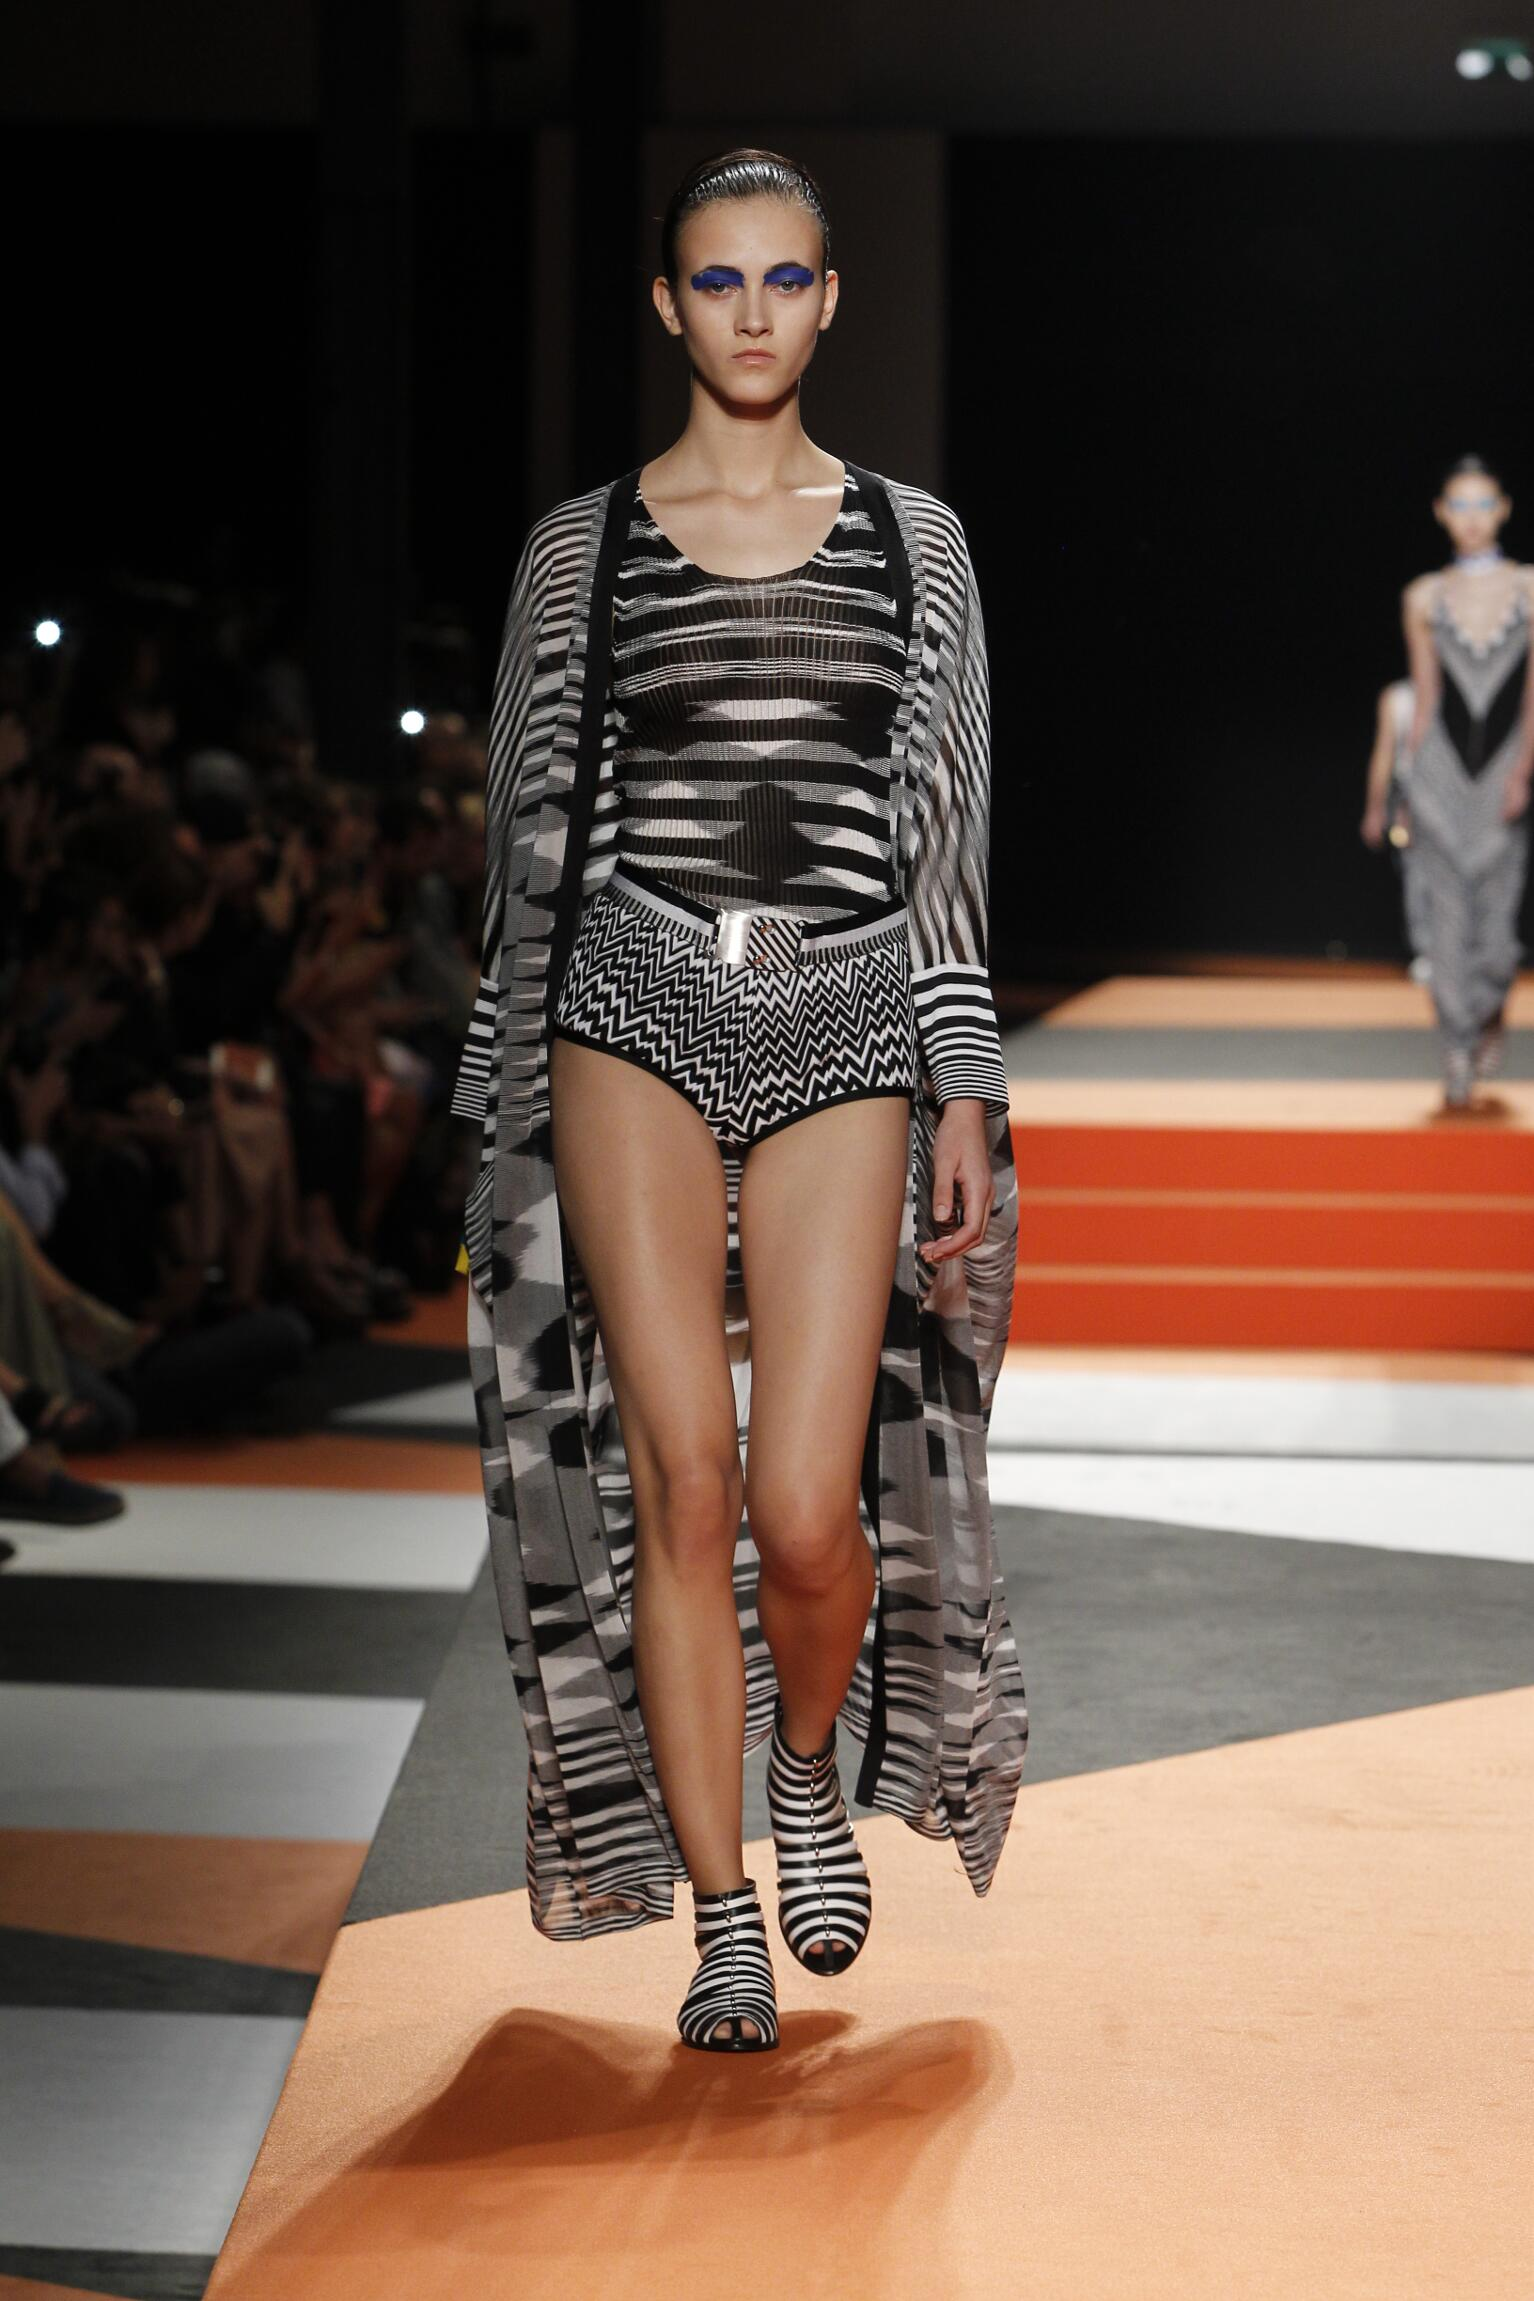 Models Fashion Show Missoni